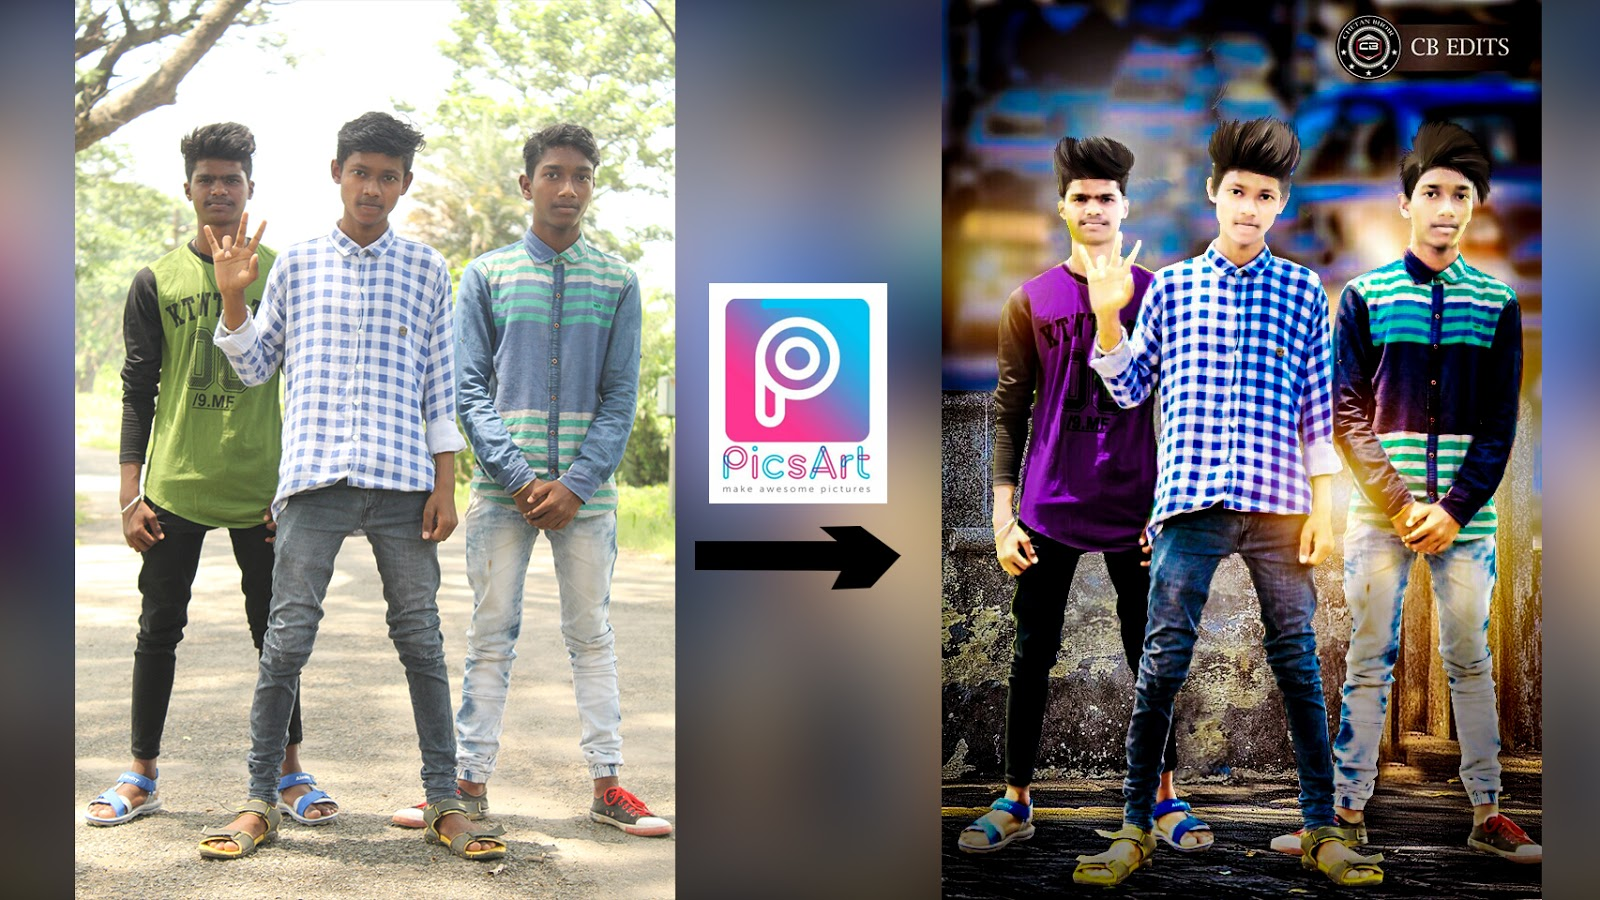 Arup creation cb edit tutorial by picsart edit like photoshop cb edit tutorial by picsart edit like photoshop picsart editing baditri Gallery